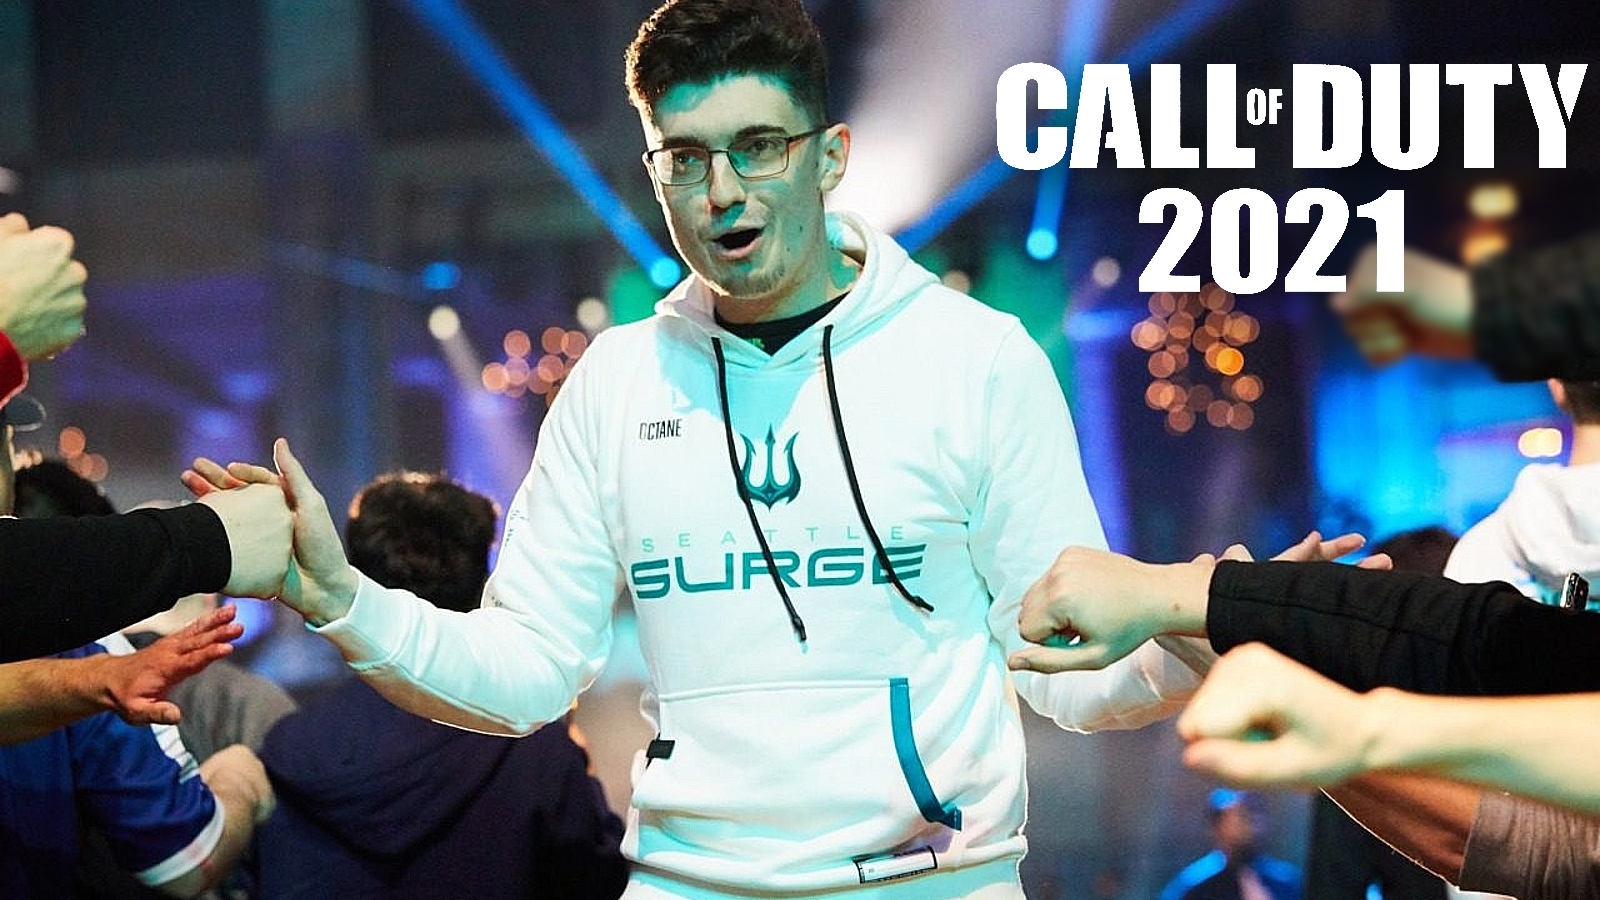 Seattle Surge Octane excited about CoD 2021 World War 2 leaks